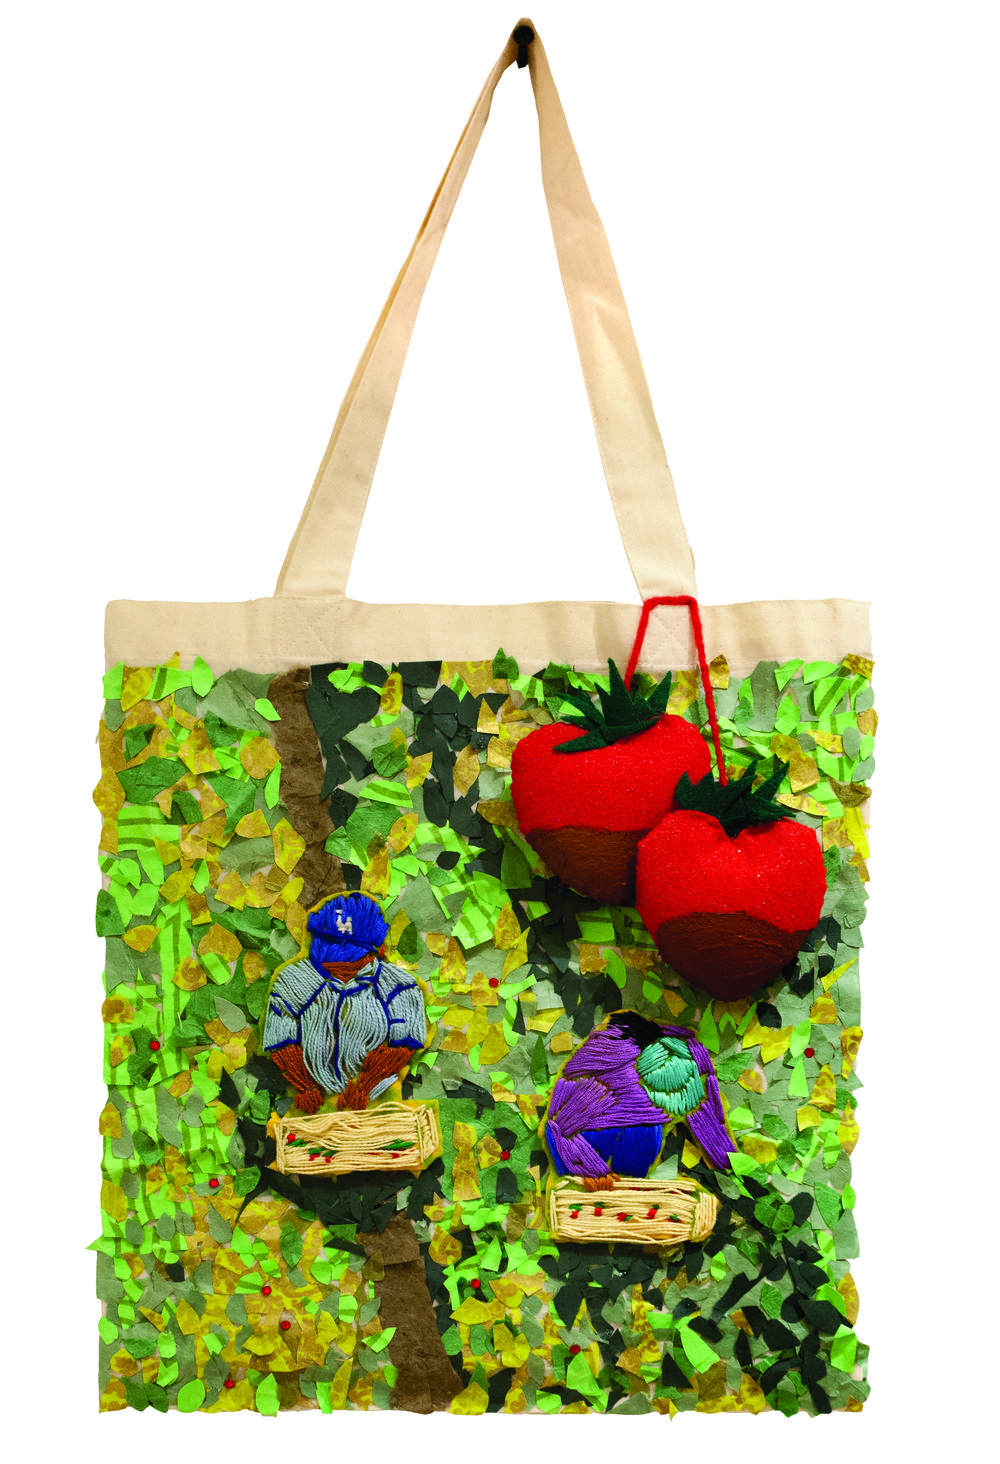 Melly Trochez // Fruit in the Fields // 2018 // Mixed media on canvas bag // 12 x 15 inches